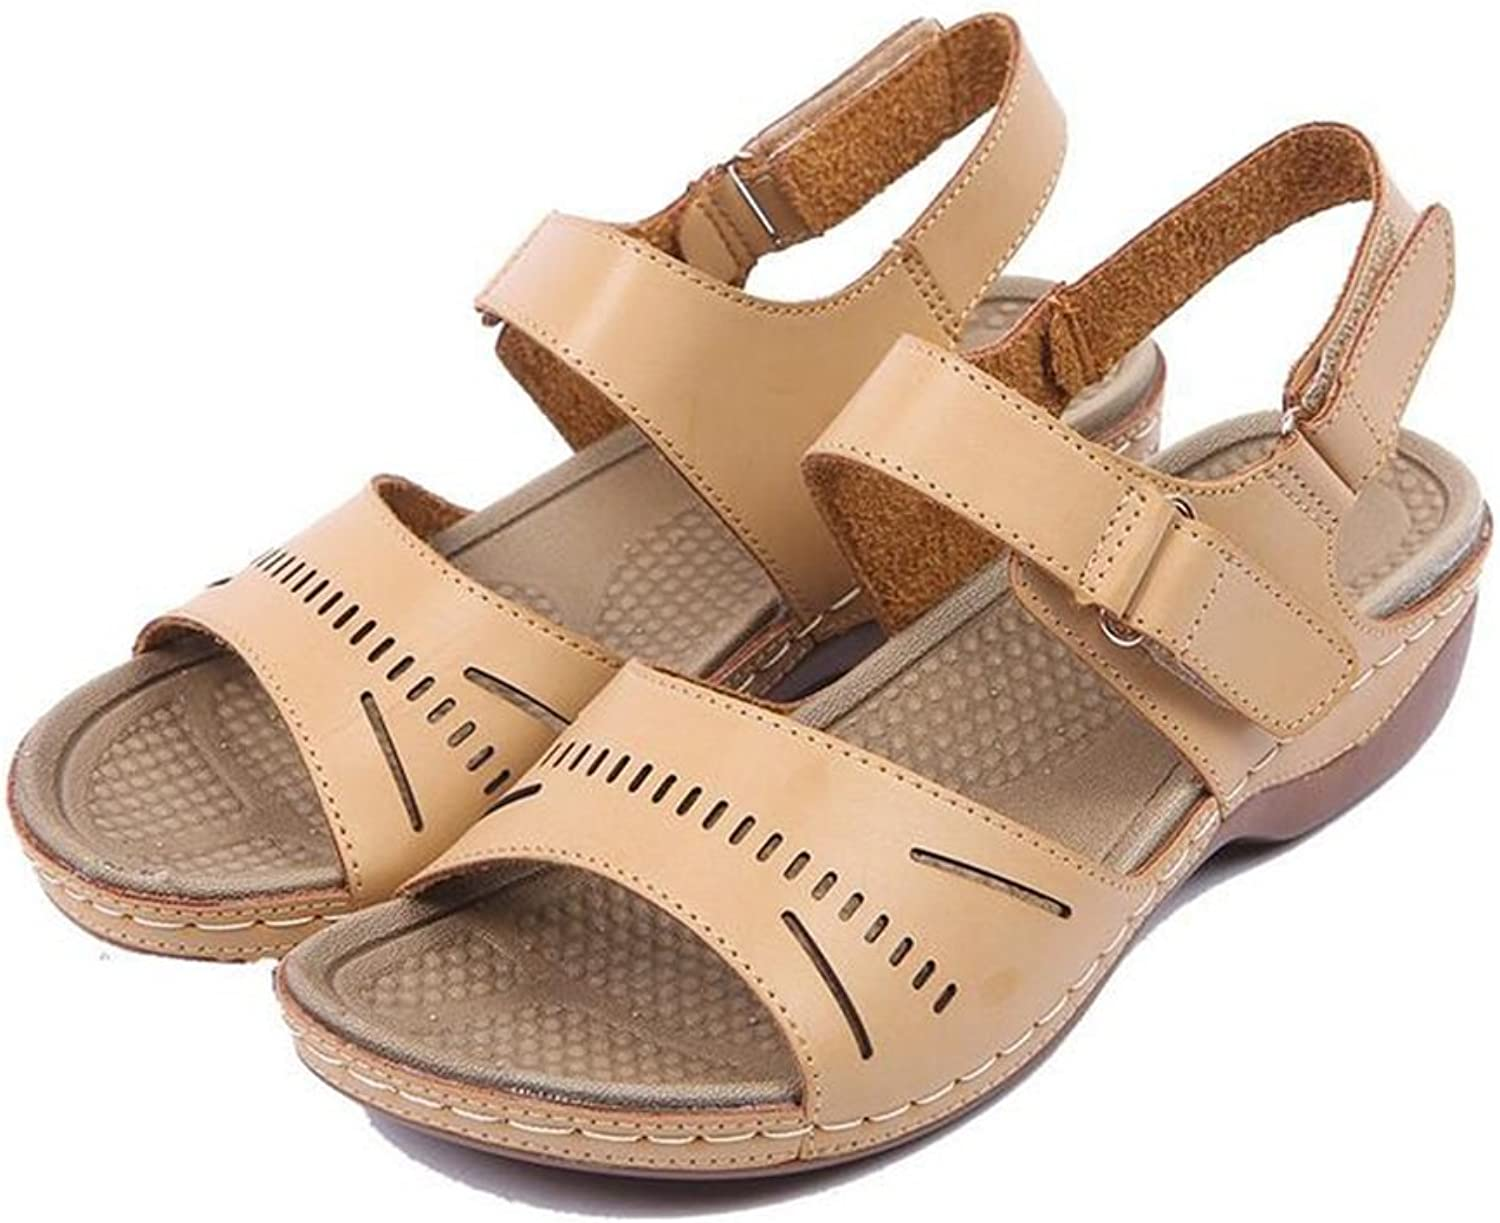 Women's shoes PU(Polyurethane) Spring Summer shoes Velcro Sandals Walking shoes Low Heel Wedge Heel Round Toe Mom shoes